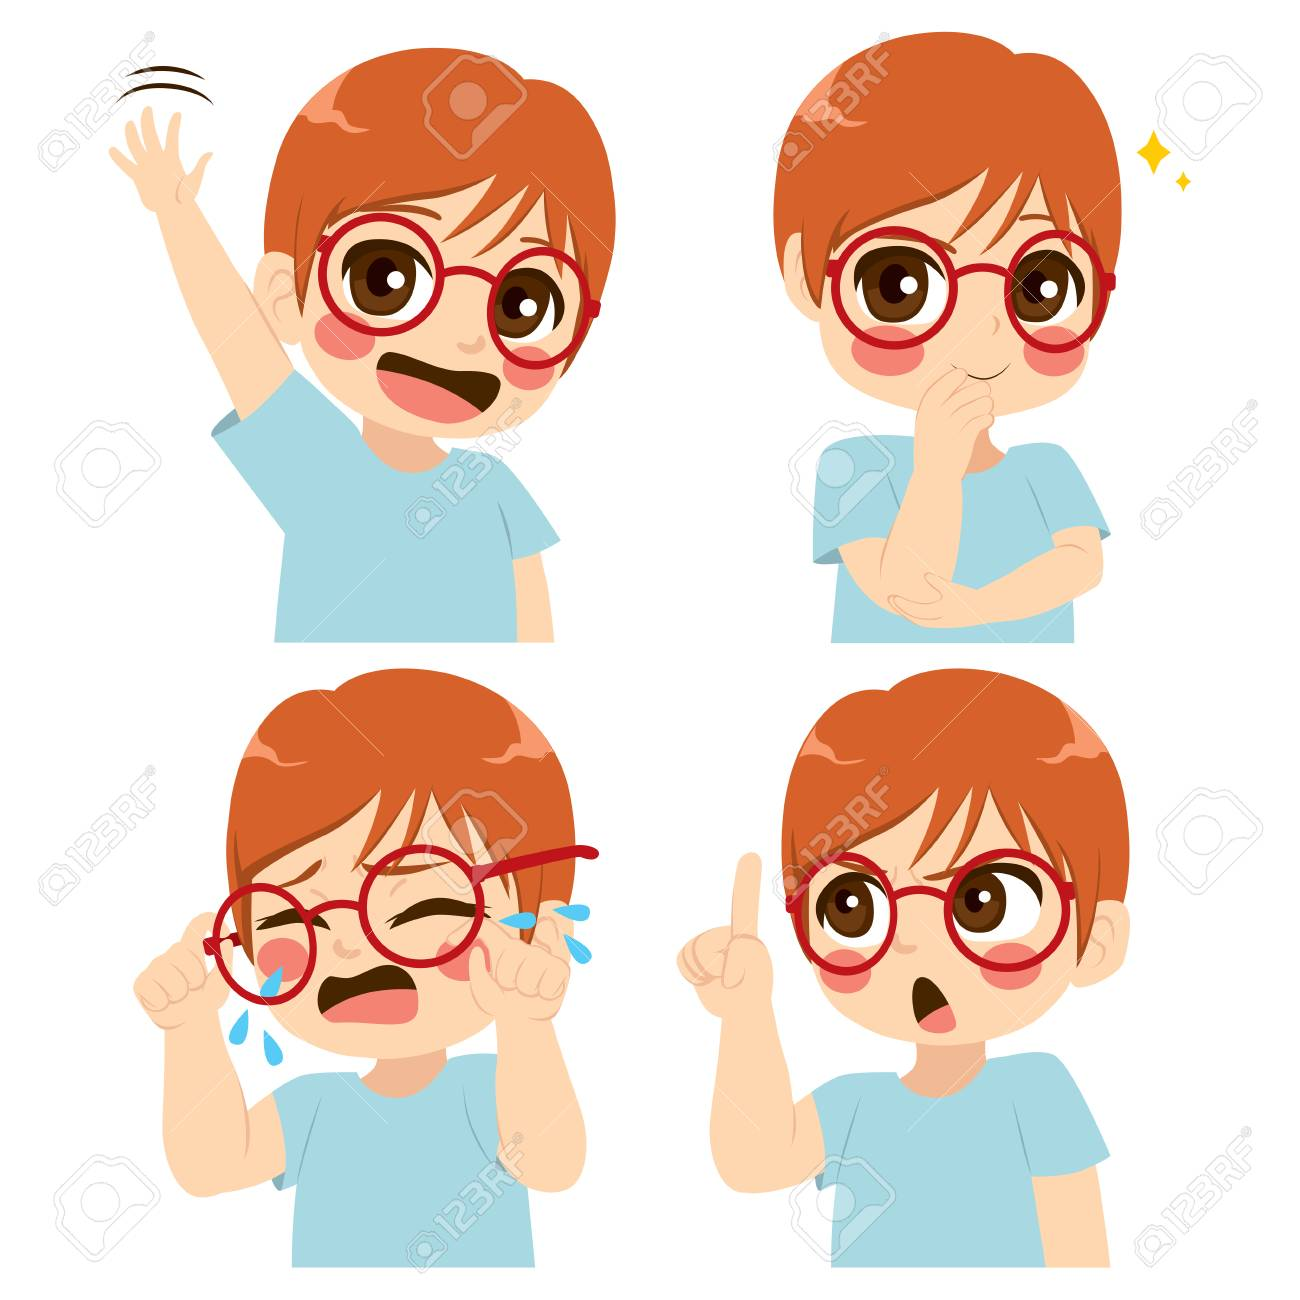 Little cute boy with glasses making different face and gesture expression set collection - 107433914